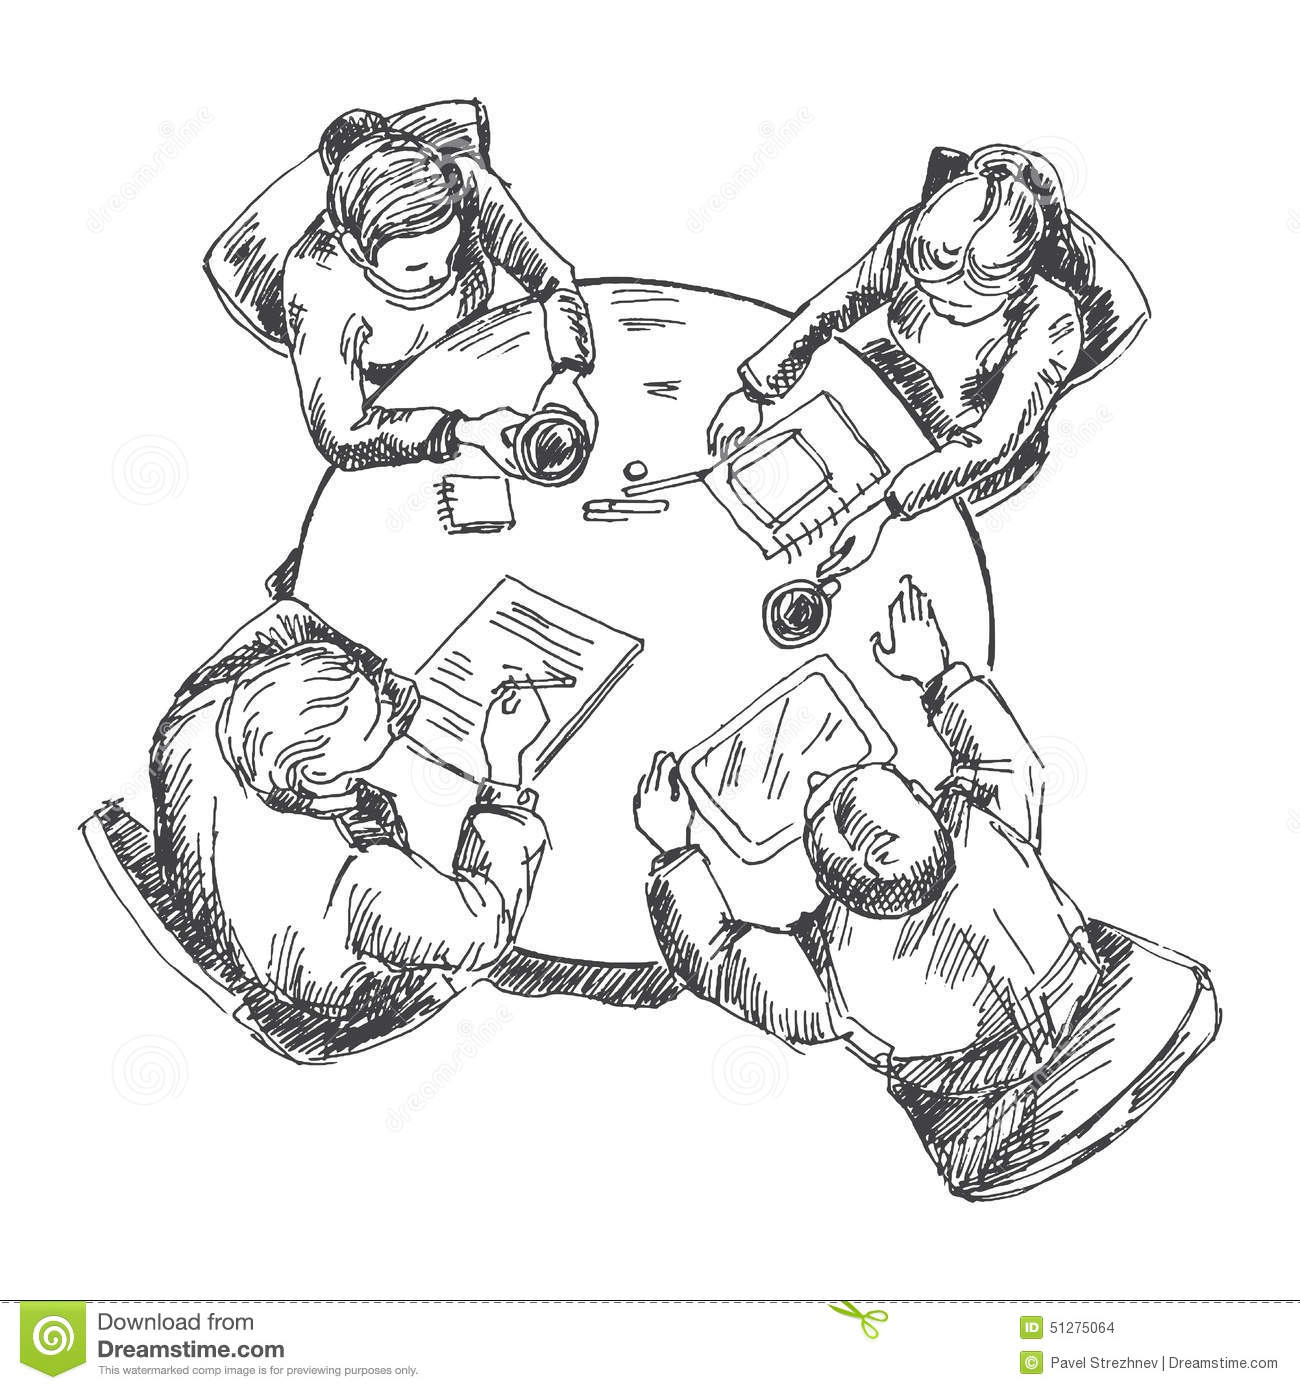 Businessmen Working Team At The Table Stock Vector - Illustration of